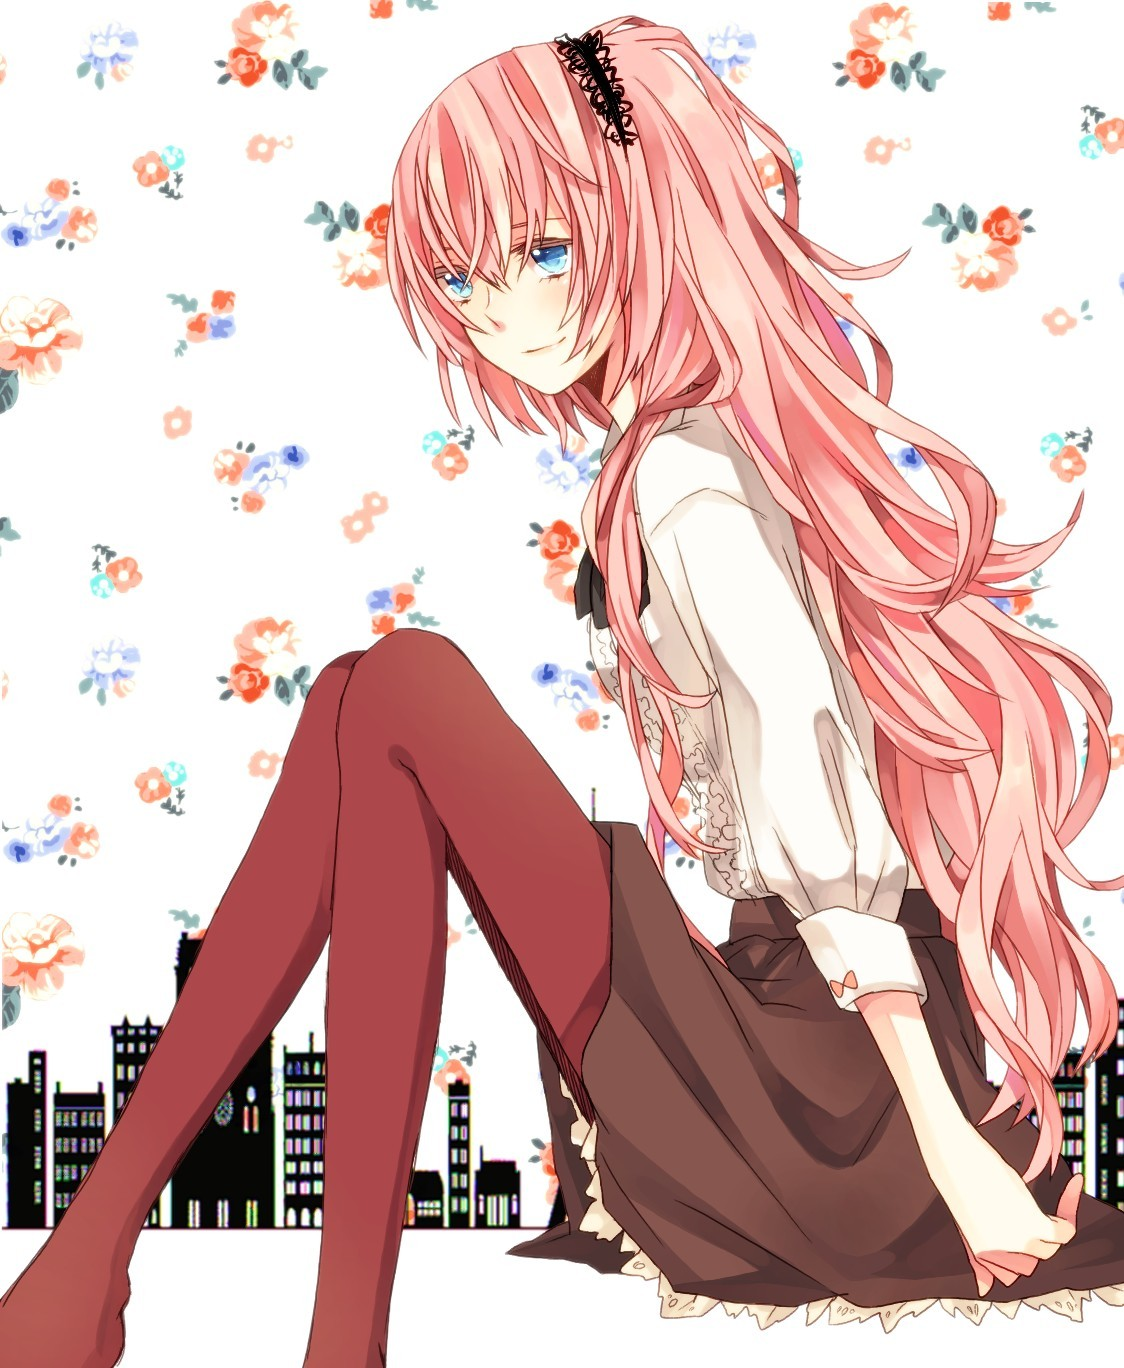 Vocaloid megurine luka long hair anime hd wallpapers jpg